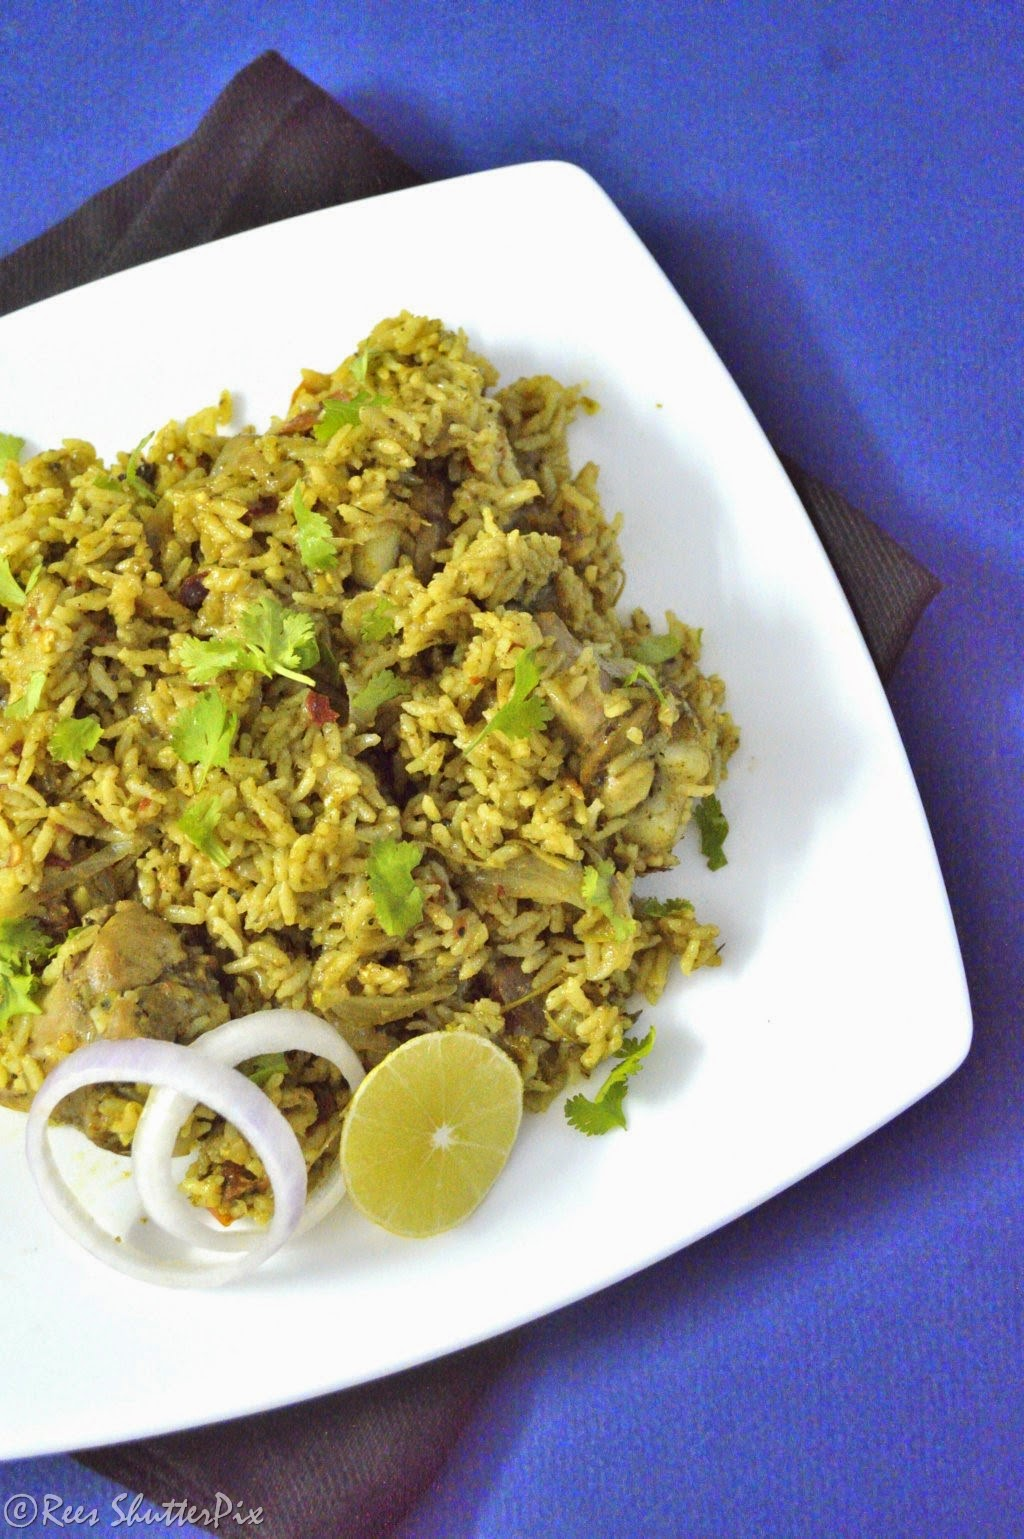 chicken briyani recipe, easy chicken briyani recipe, dindigul chicken briyani recipe, thalapakkati briyani recipe,dindigul briyani recipe, thalapakati chicken briyani recipe